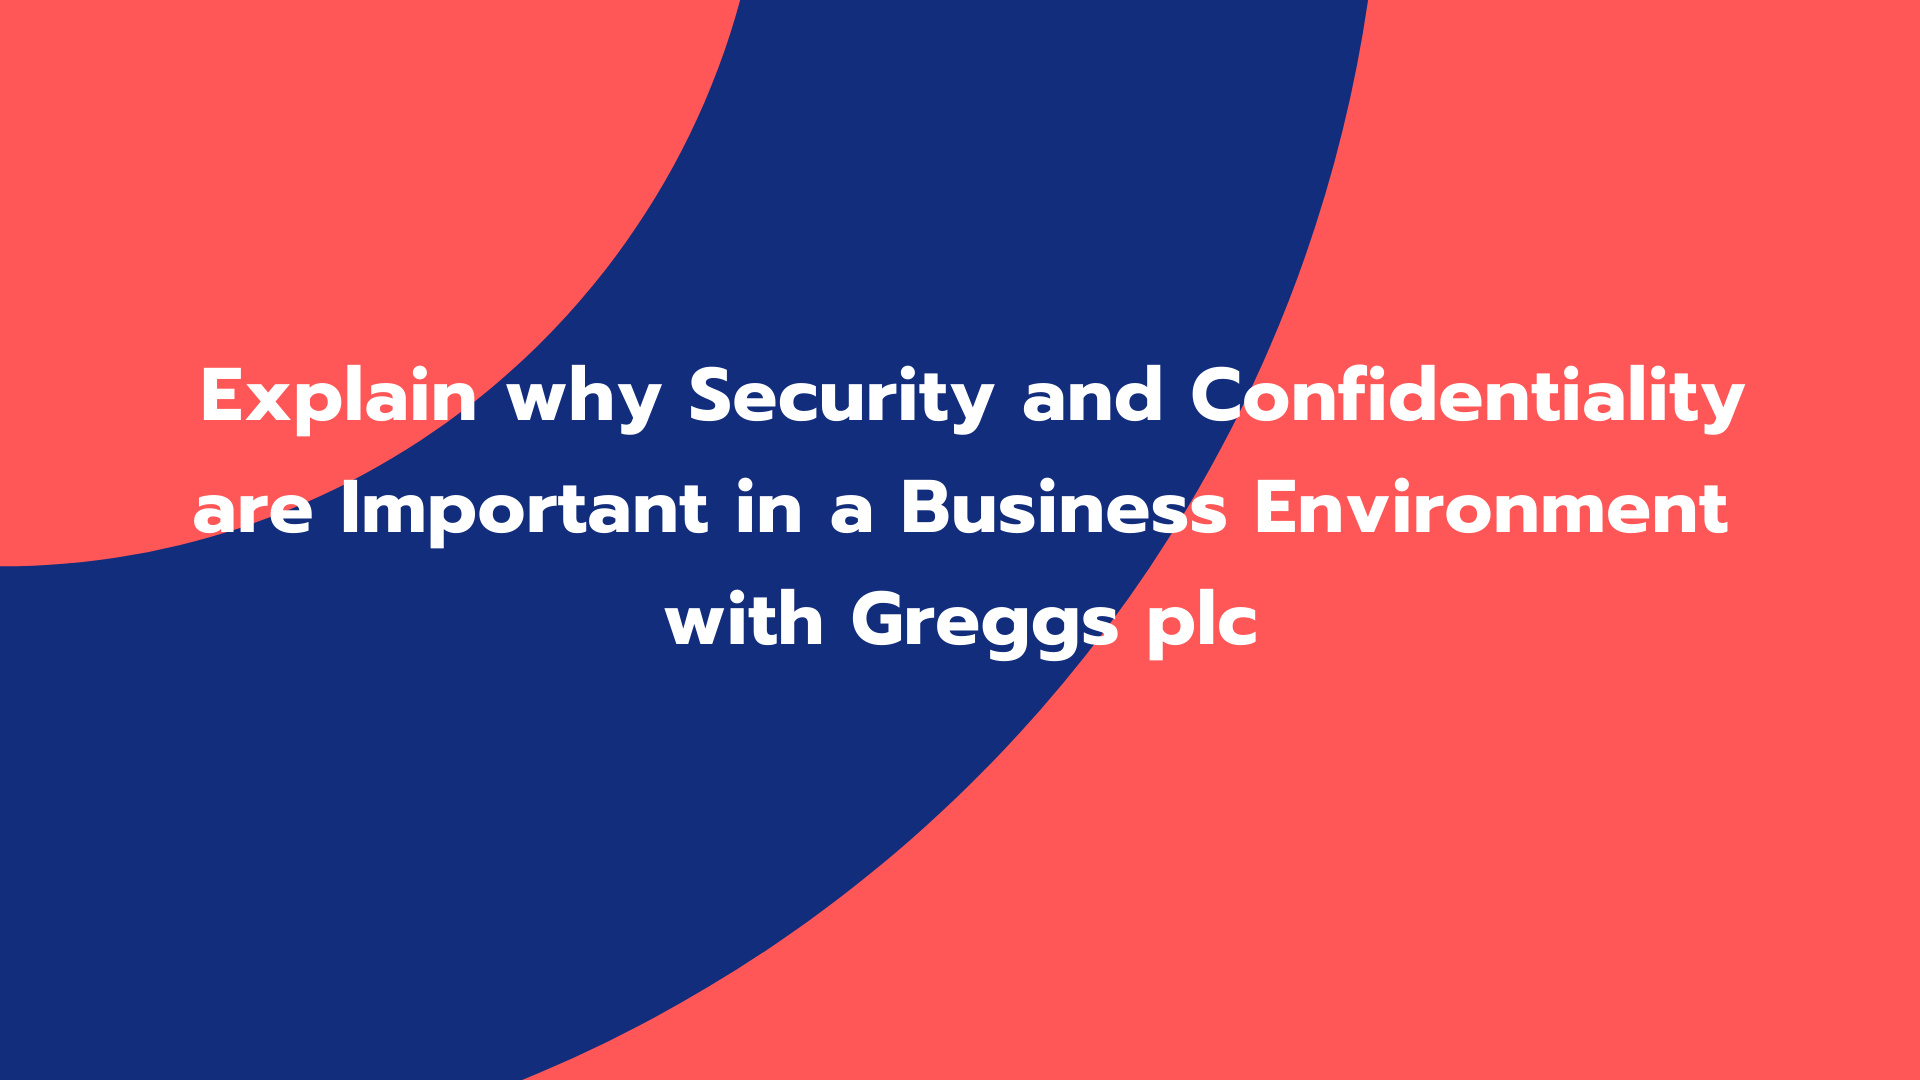 Explain why Security and Confidentiality are Important in a Business Environment with Greggs plc